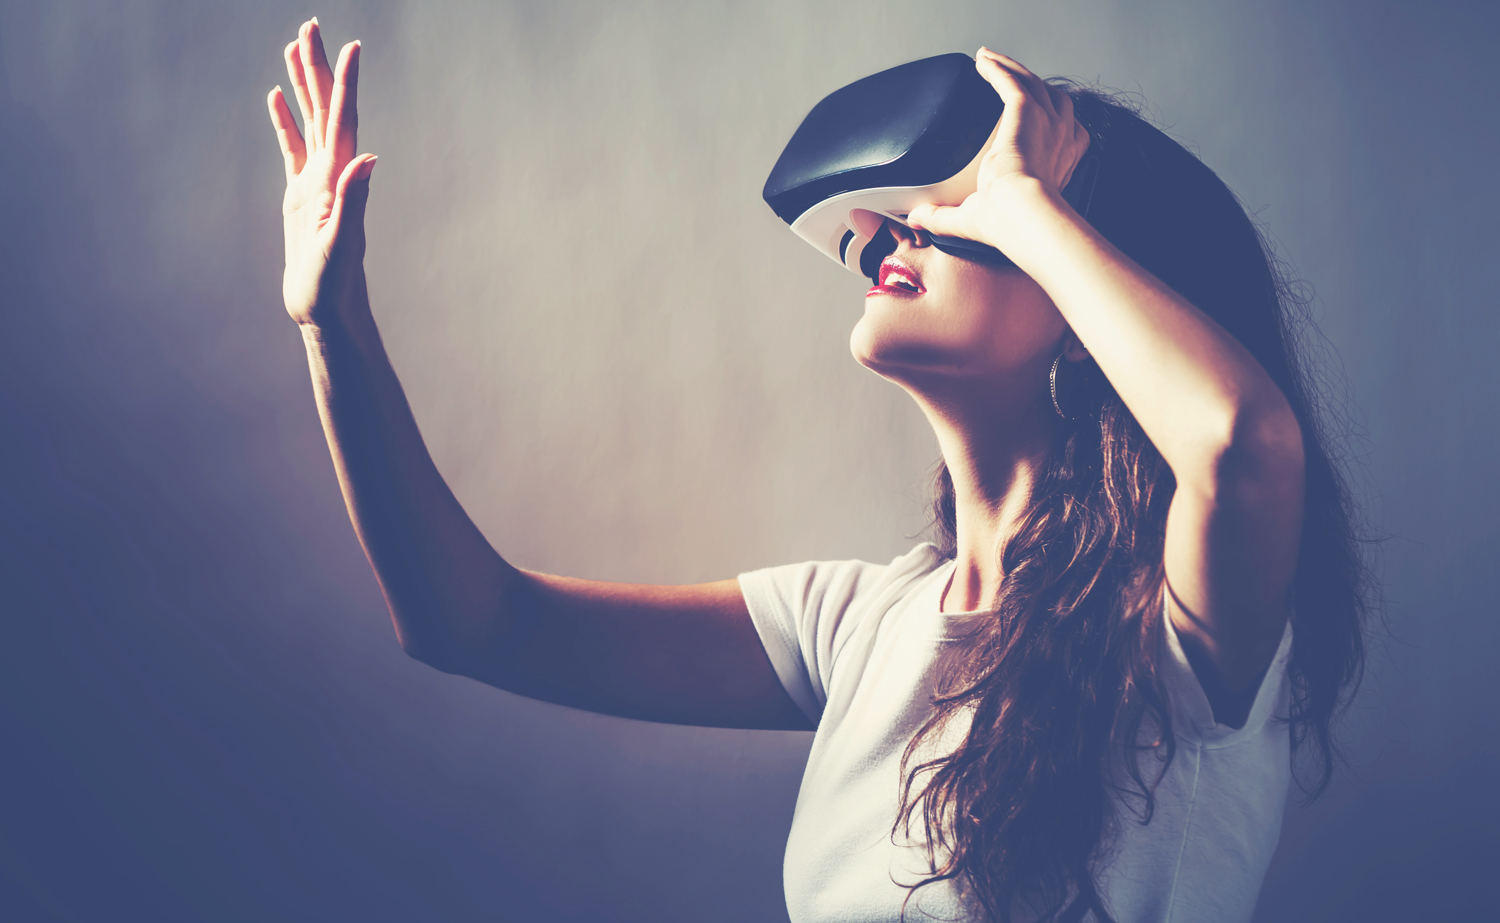 6 Doubts About Virtual Reality You Should Clarify